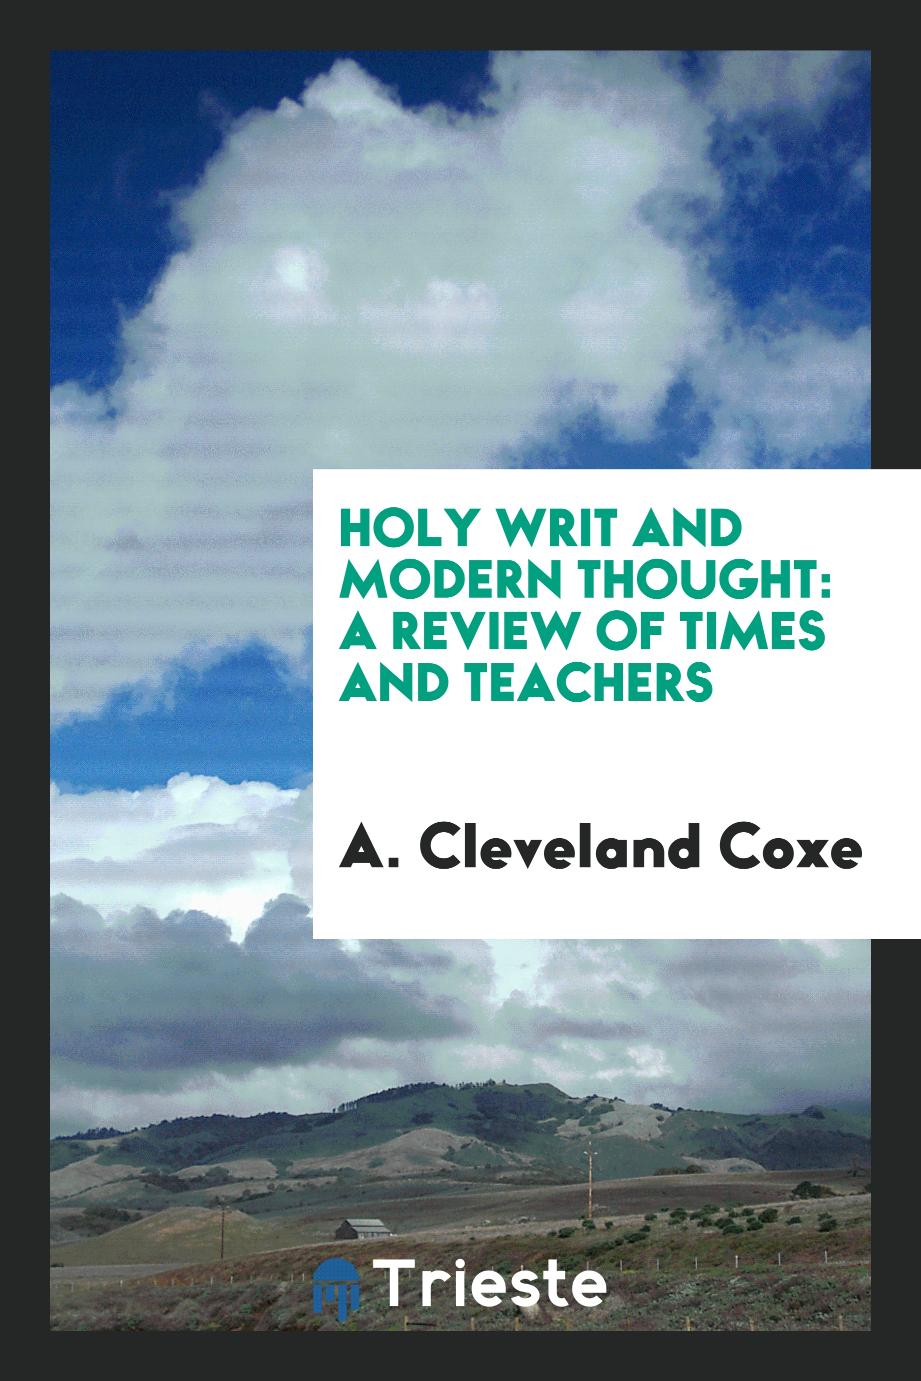 Holy writ and modern thought: a review of times and teachers